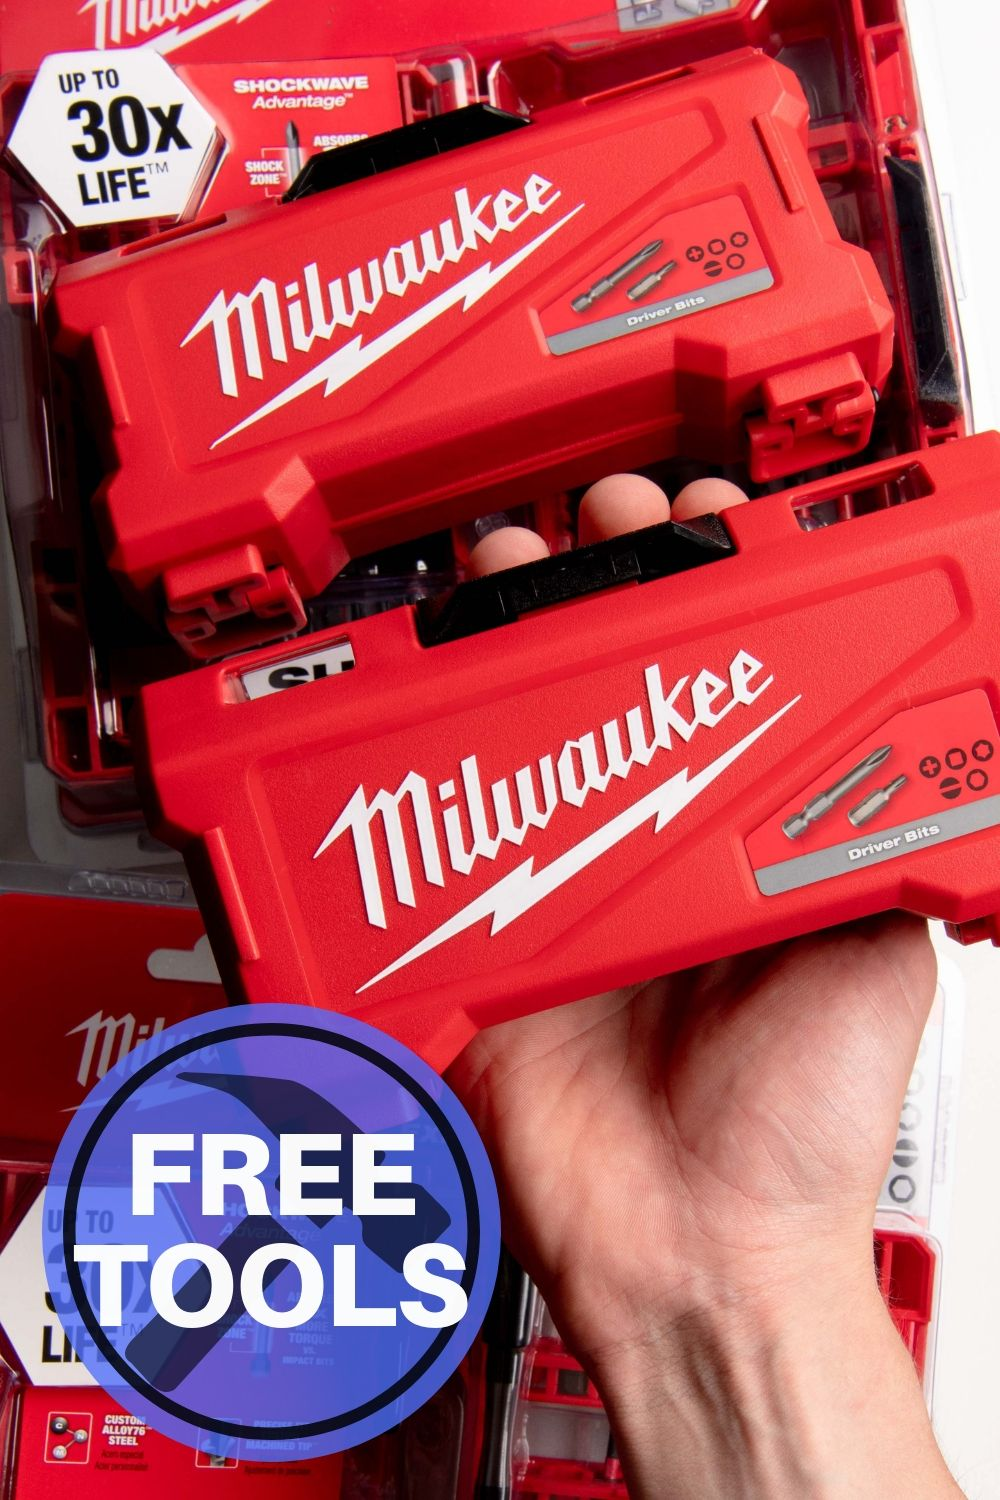 Sign up to get your free Milwaukee tool sample delivered to